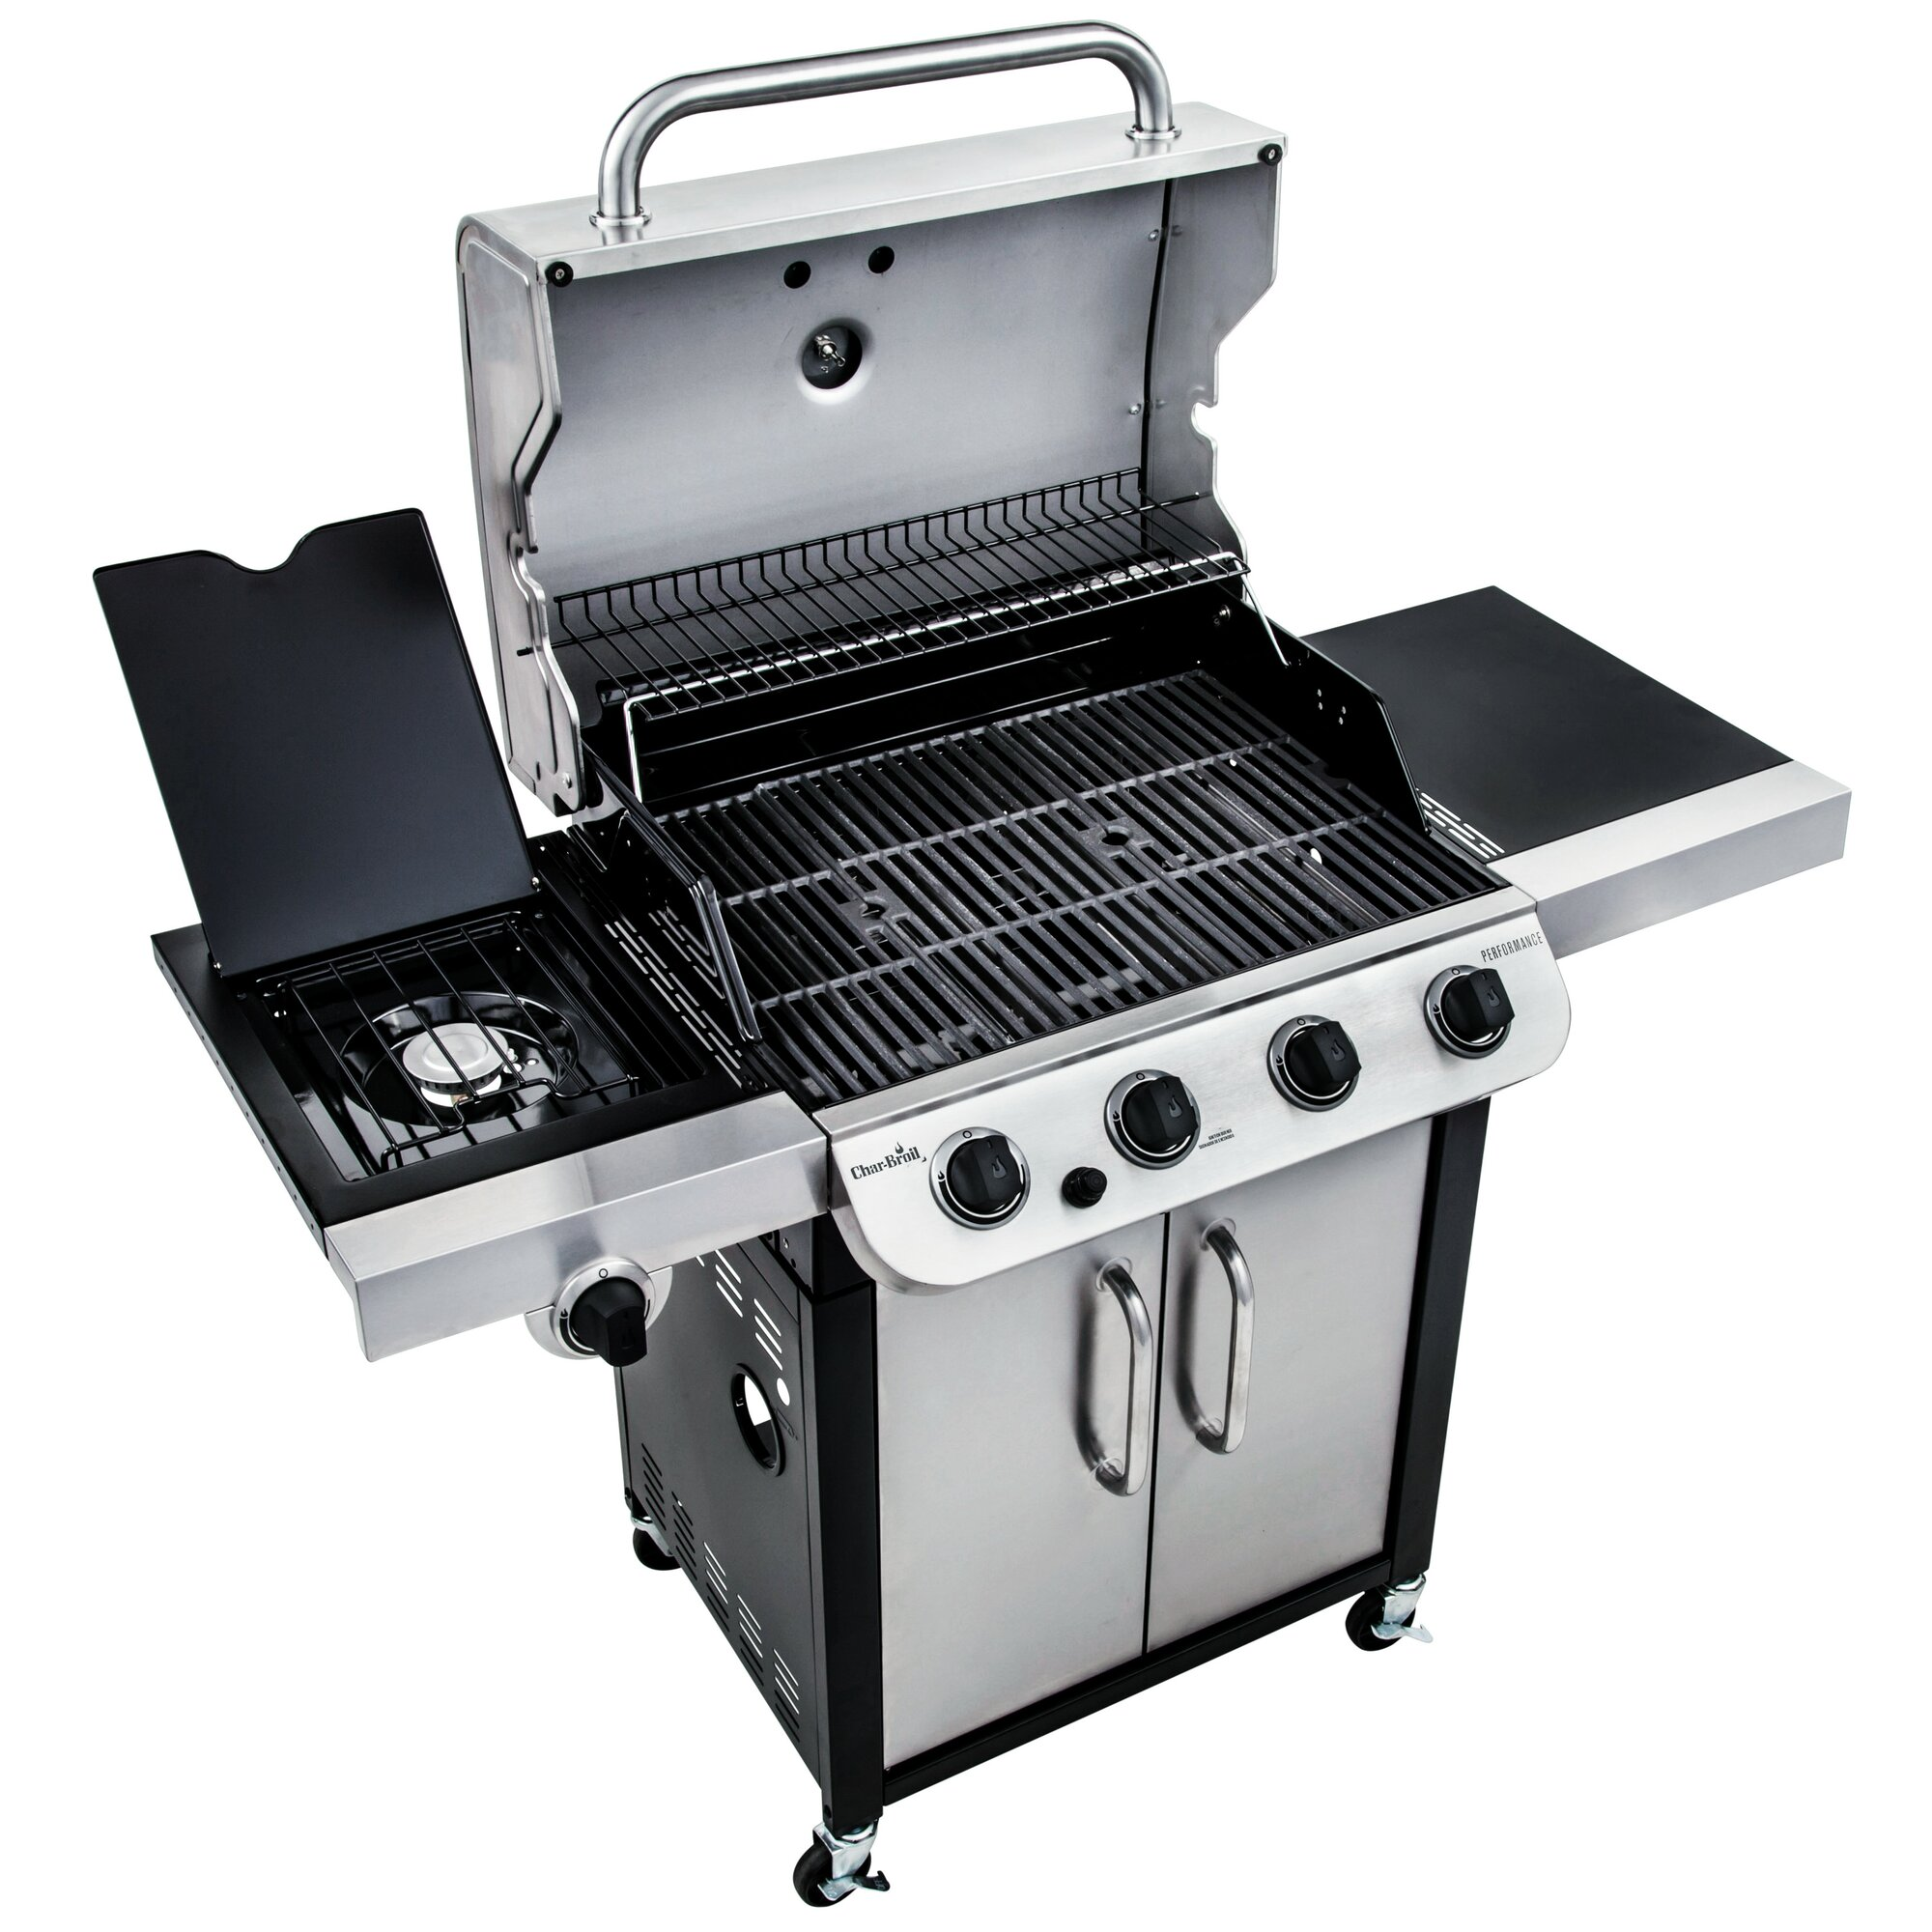 kitchenaid 4 burner propane gas grill in stainless steel with ...